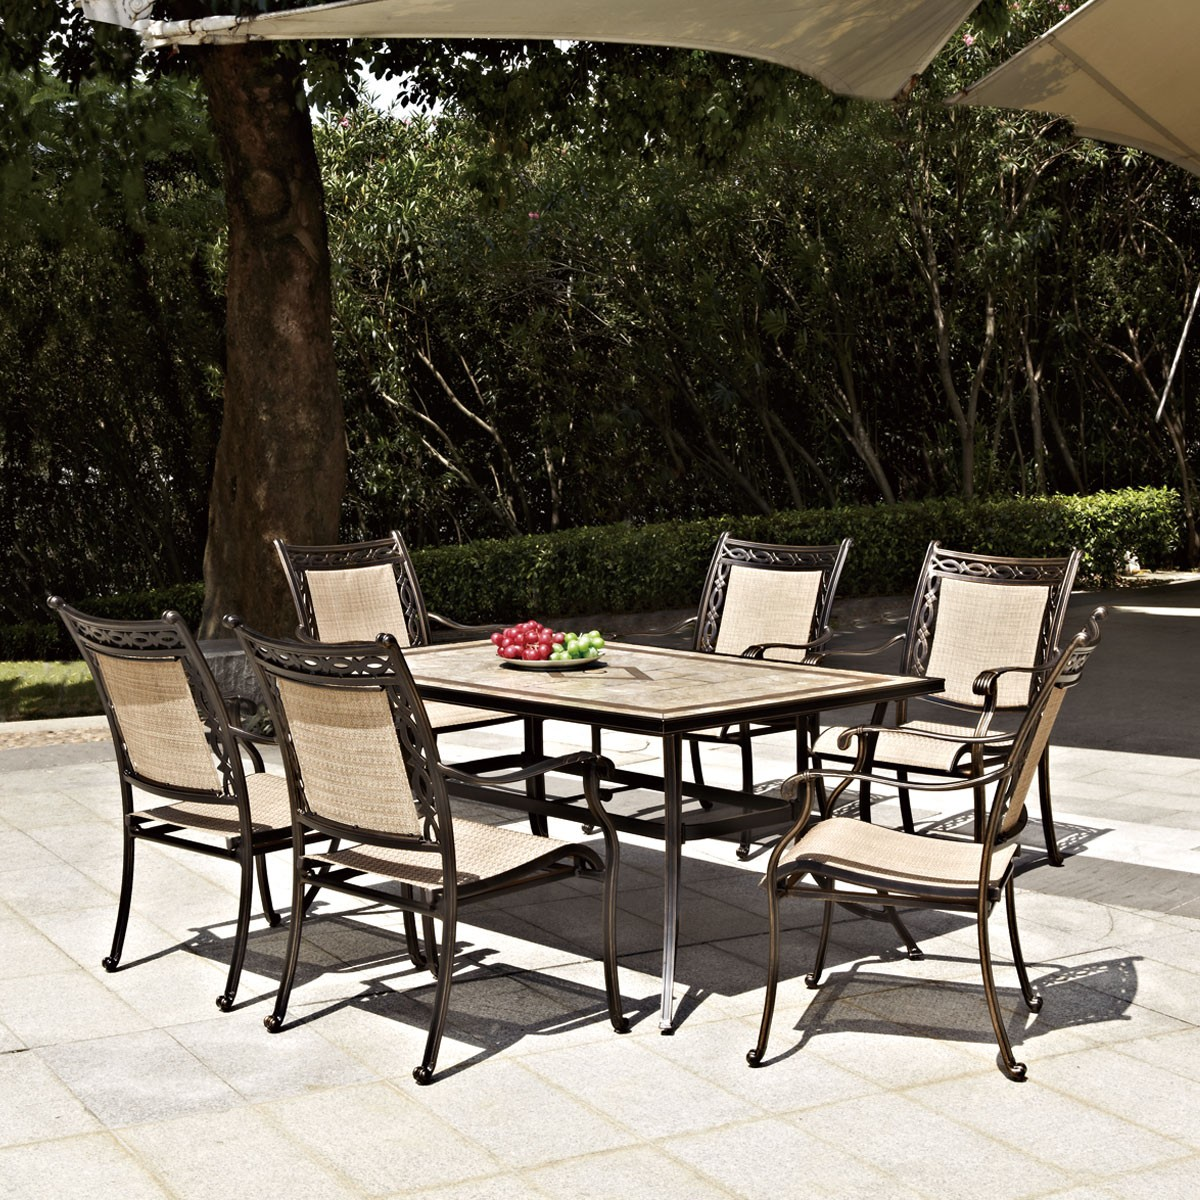 7 Pieces Dining Set: 1 * Dining Table, 6 * Chair (LLS-CA008)